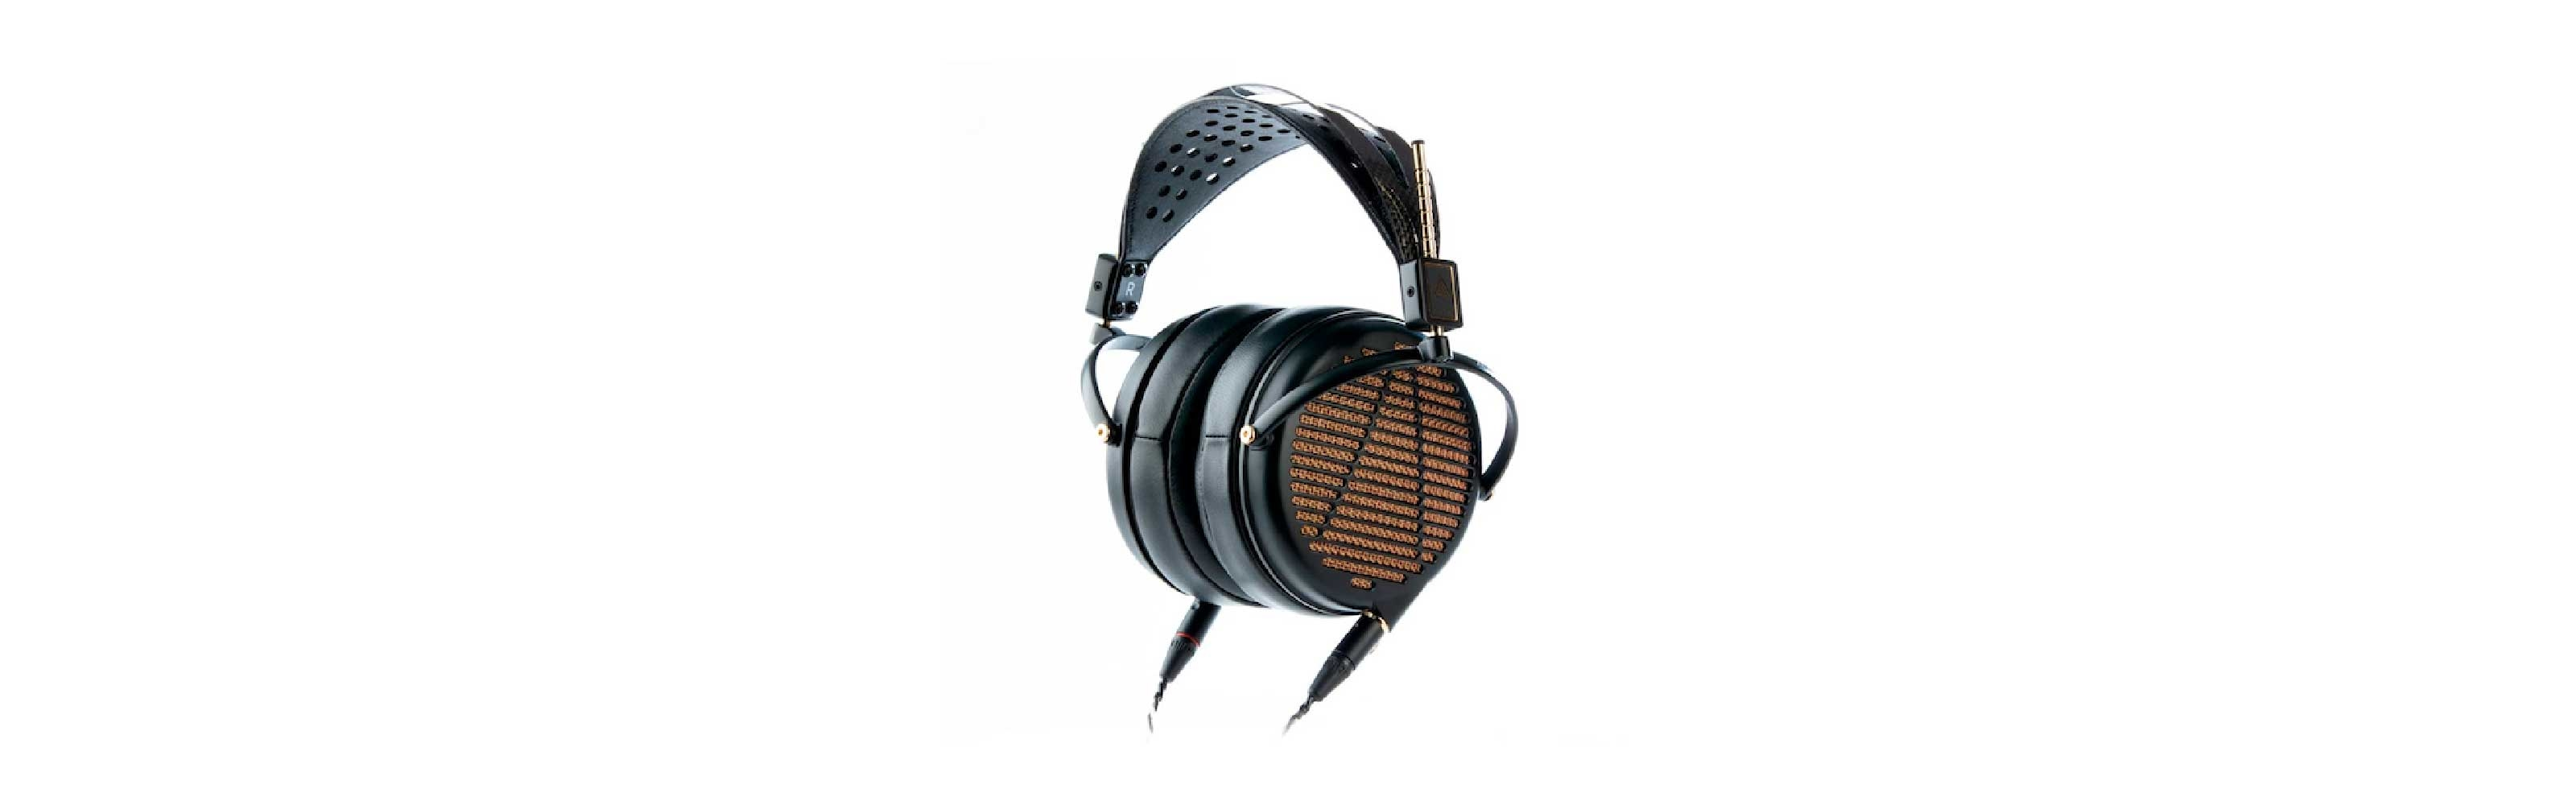 Audeze LCD-4z Review